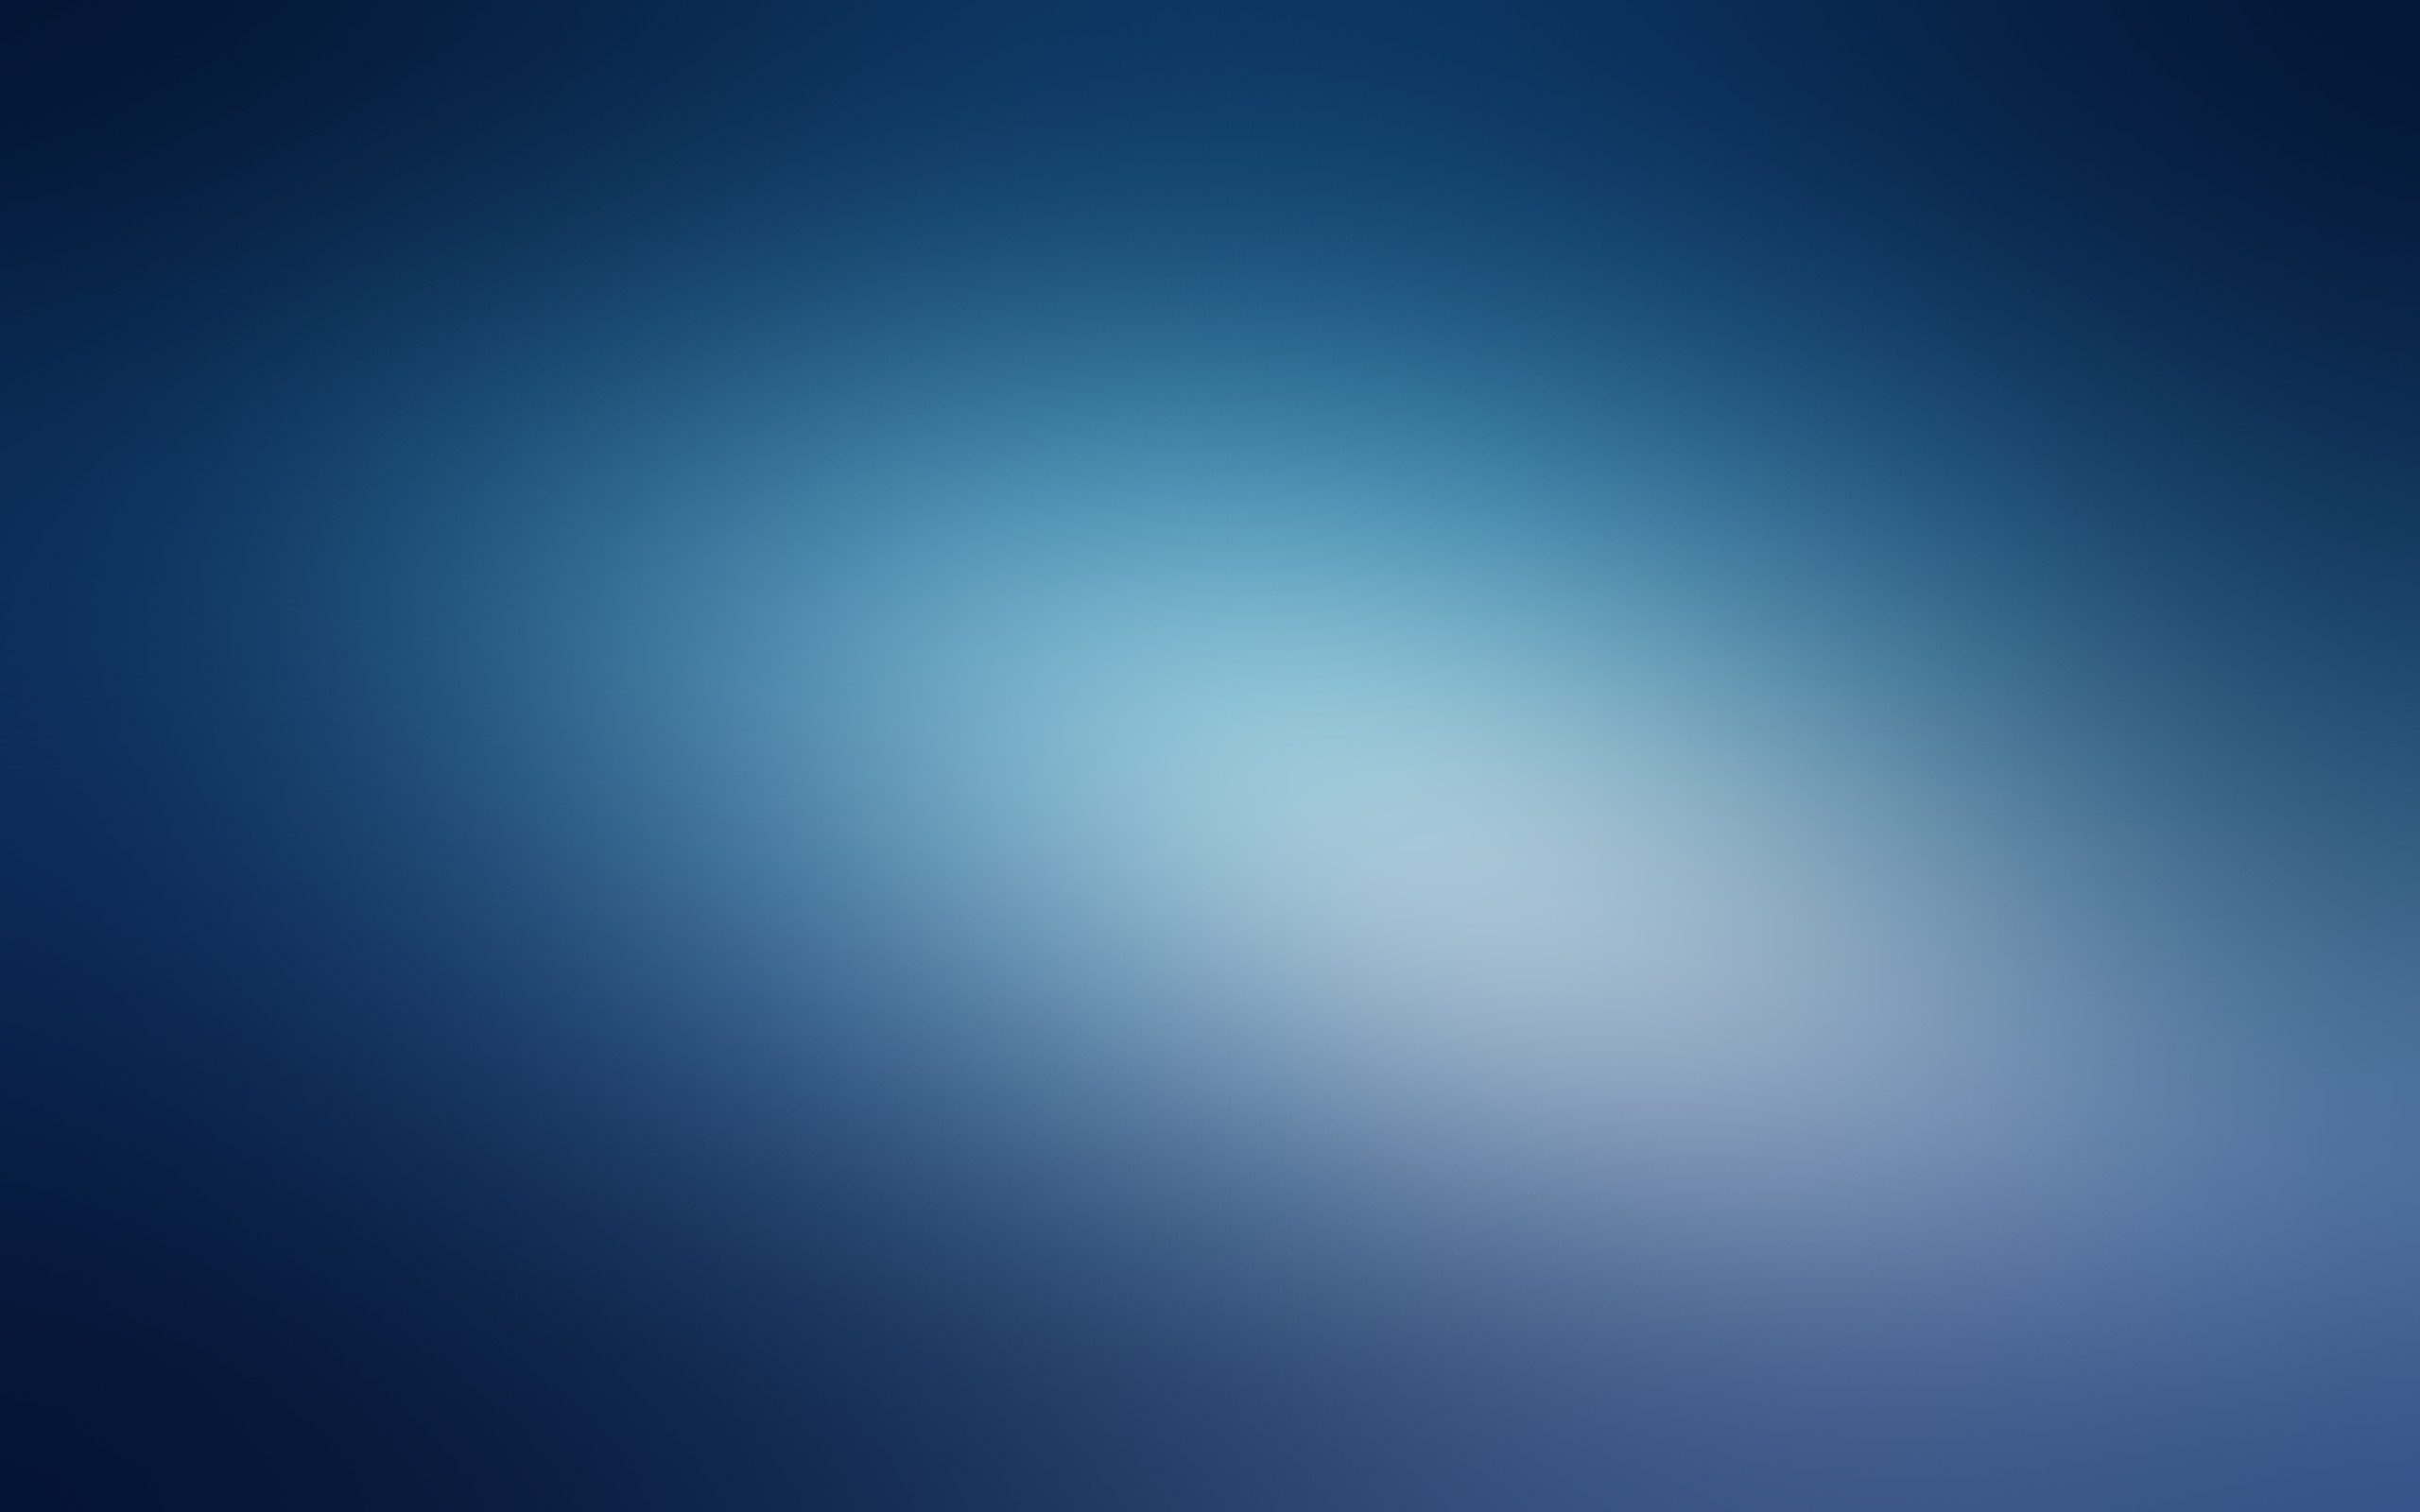 2560x1600 Soft Gradient, Blue Wallpapers HD / Desktop and Mobile Backgrounds #6528